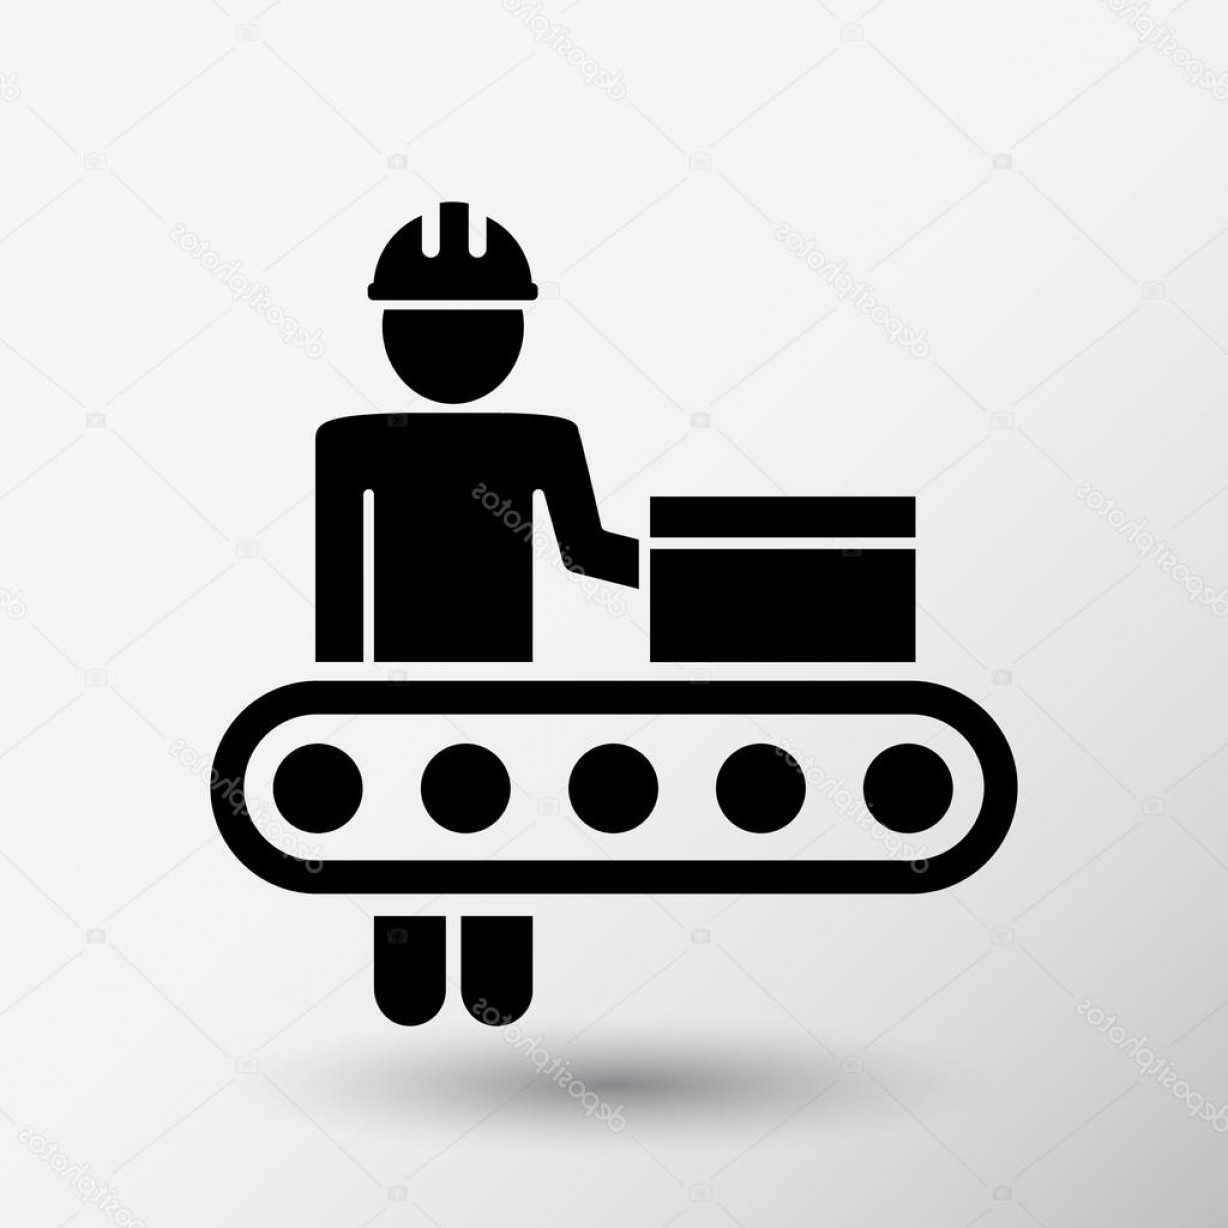 Workshop Icon Vector: Stock Illustration Engineering Workshop Industrial Operation Icon